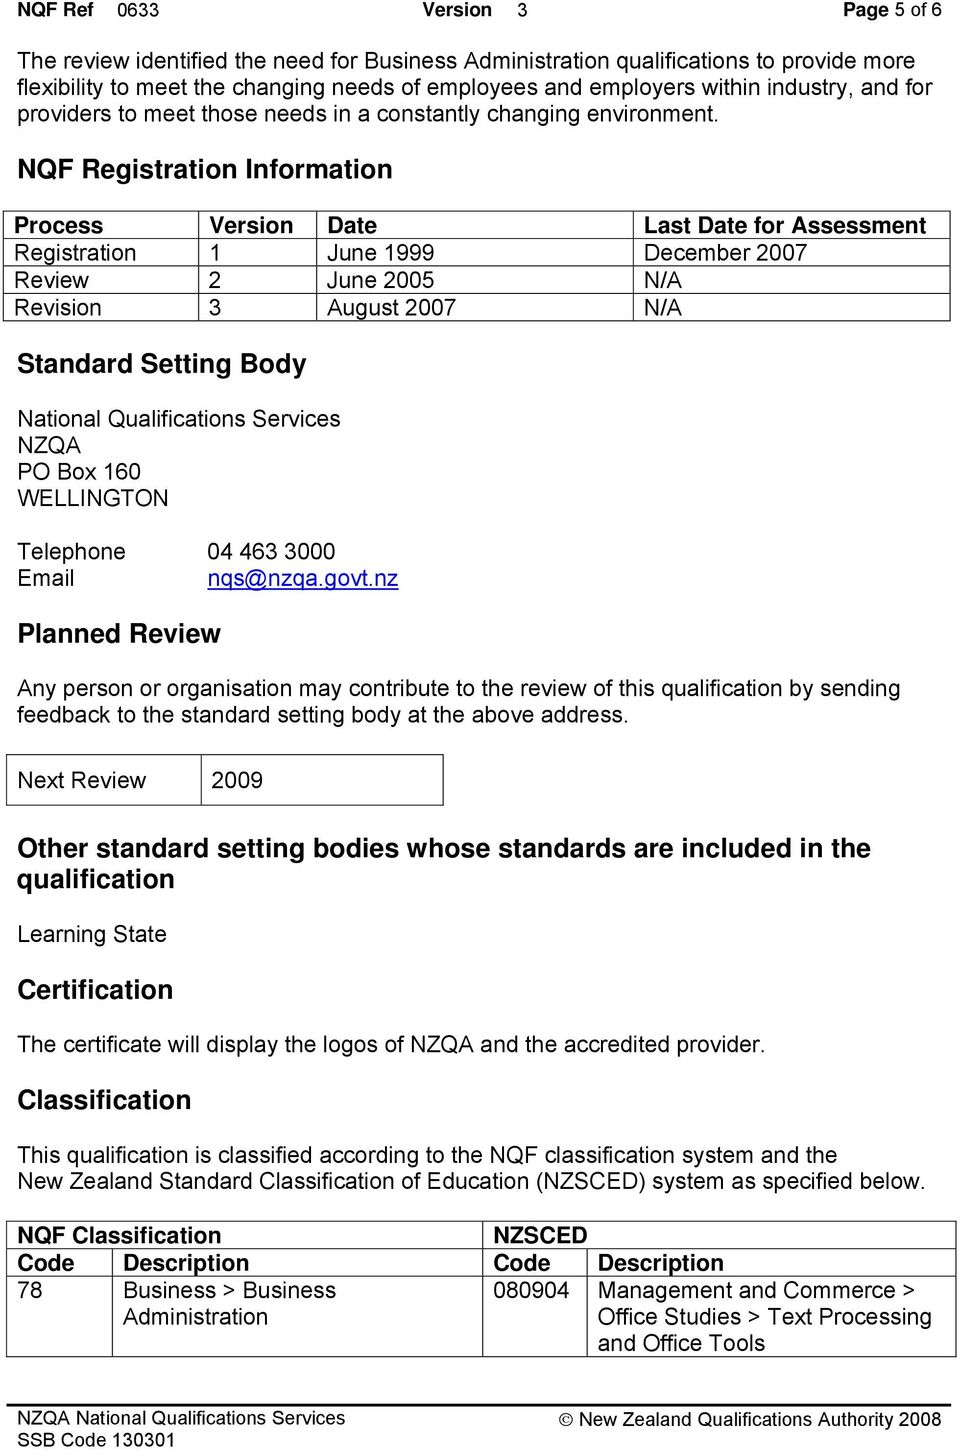 NQF Registration Information Process Version Date Last Date for Assessment Registration 1 June 1999 December 2007 Review 2 June 2005 N/A Revision 3 August 2007 N/A Standard Setting Body National